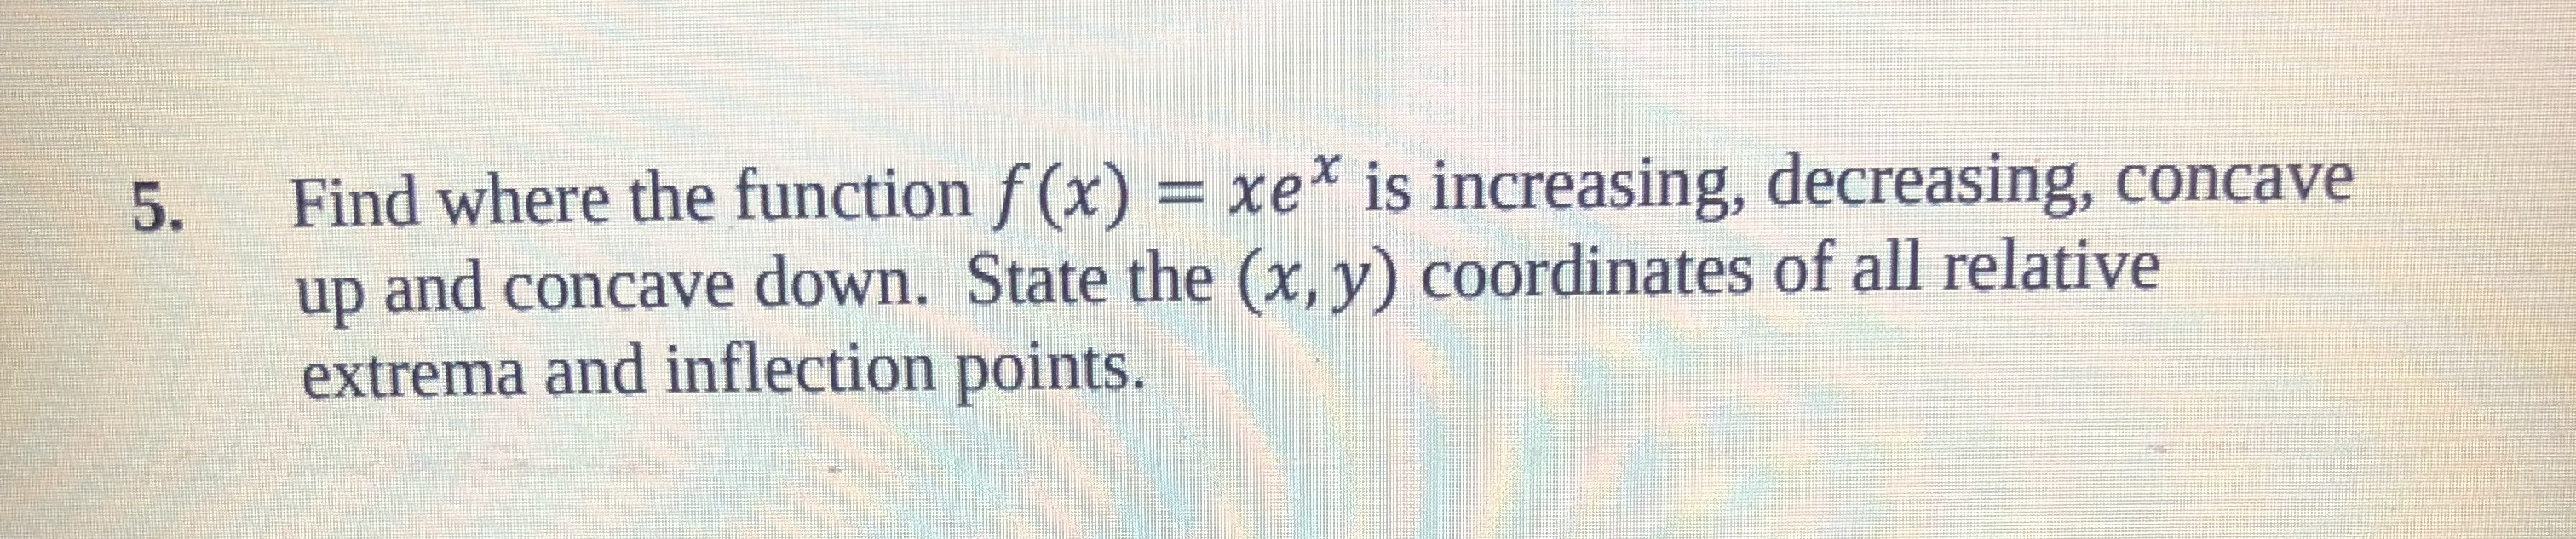 5. Find where the function f (x) xe is increasing, decreasing, concave up and concave down. State the (x, y) coordinates of all relative extrema and inflection points.